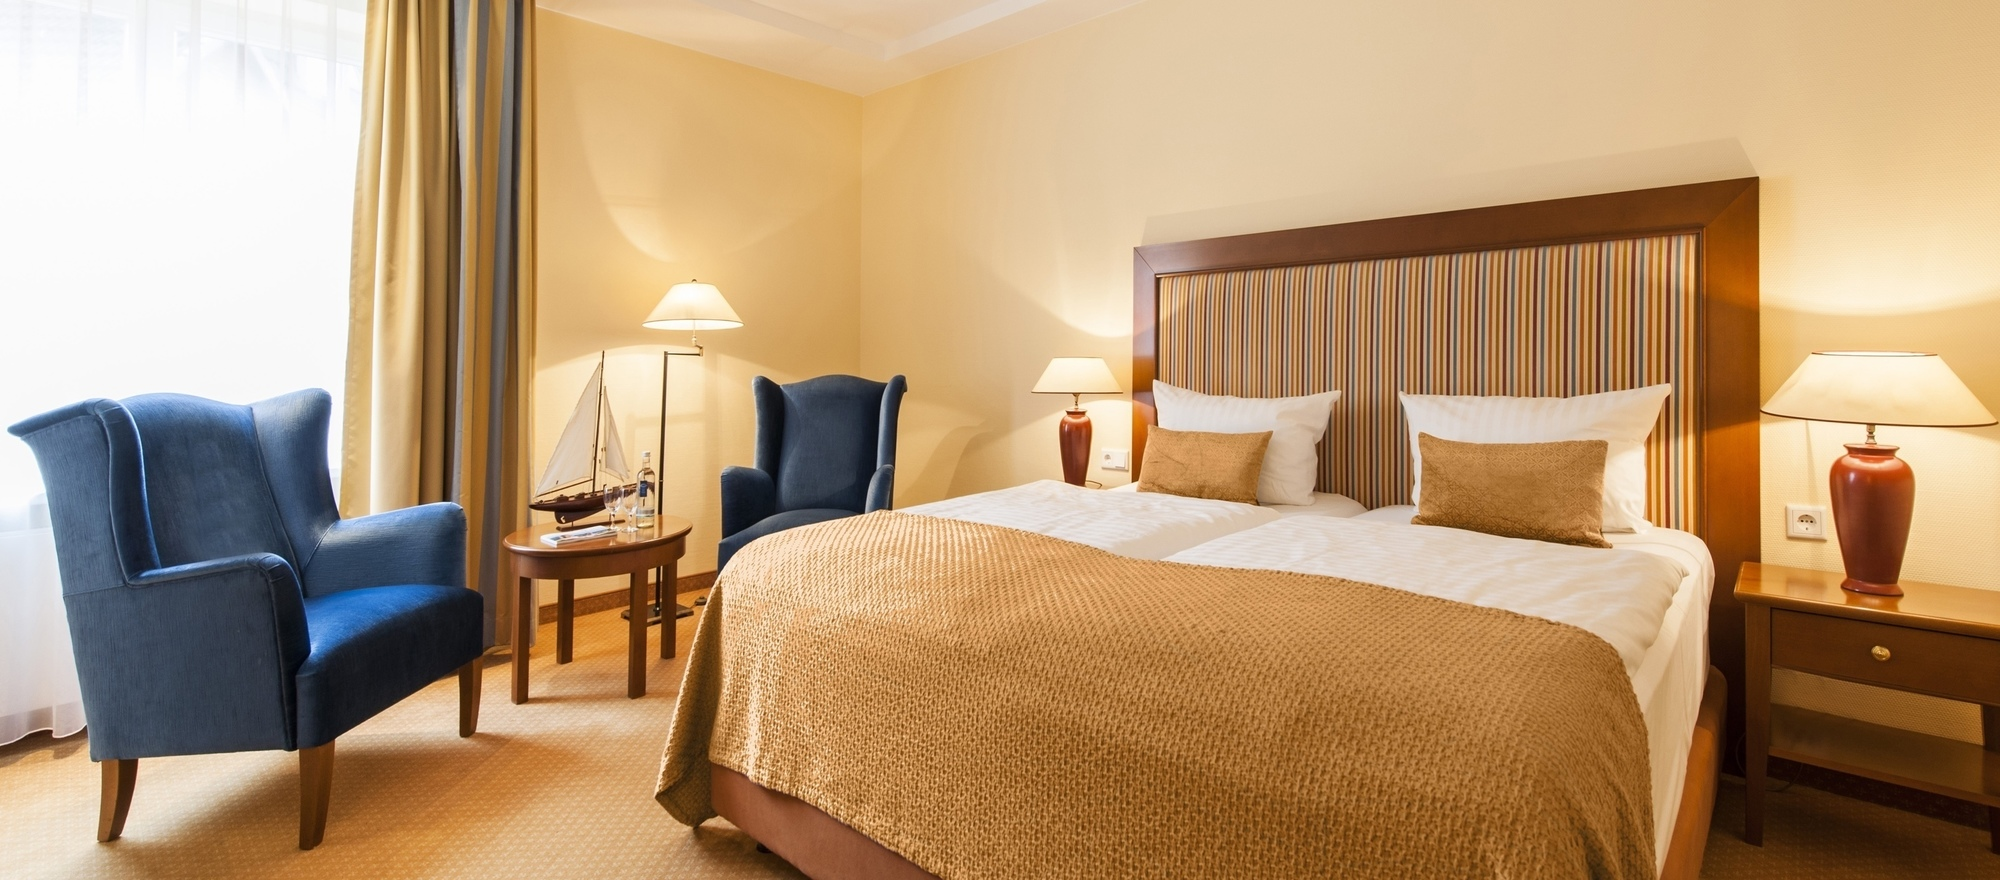 Comfortably furnished room in a classical, light-flooded style with air-conditioning and a cozy sitting area in the 4-star hotel Ringhotel Birke in Kiel